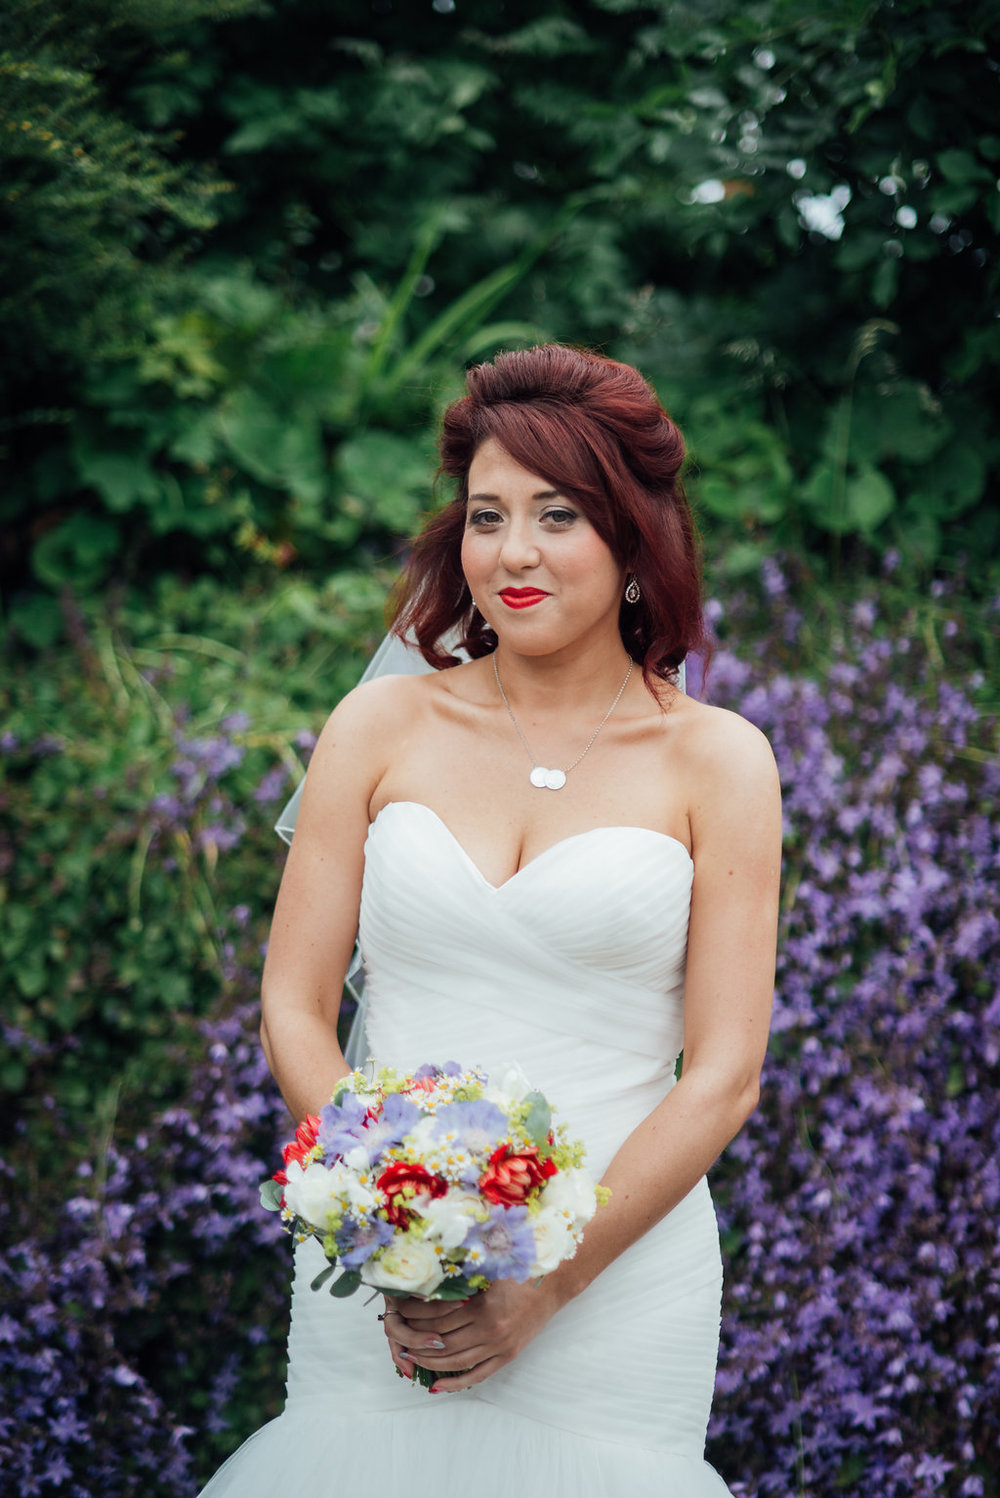 liberty-pearl-photography-cornwall-wedding-porthleven-wedding-red-and-blue-wedding-colour-palette-50